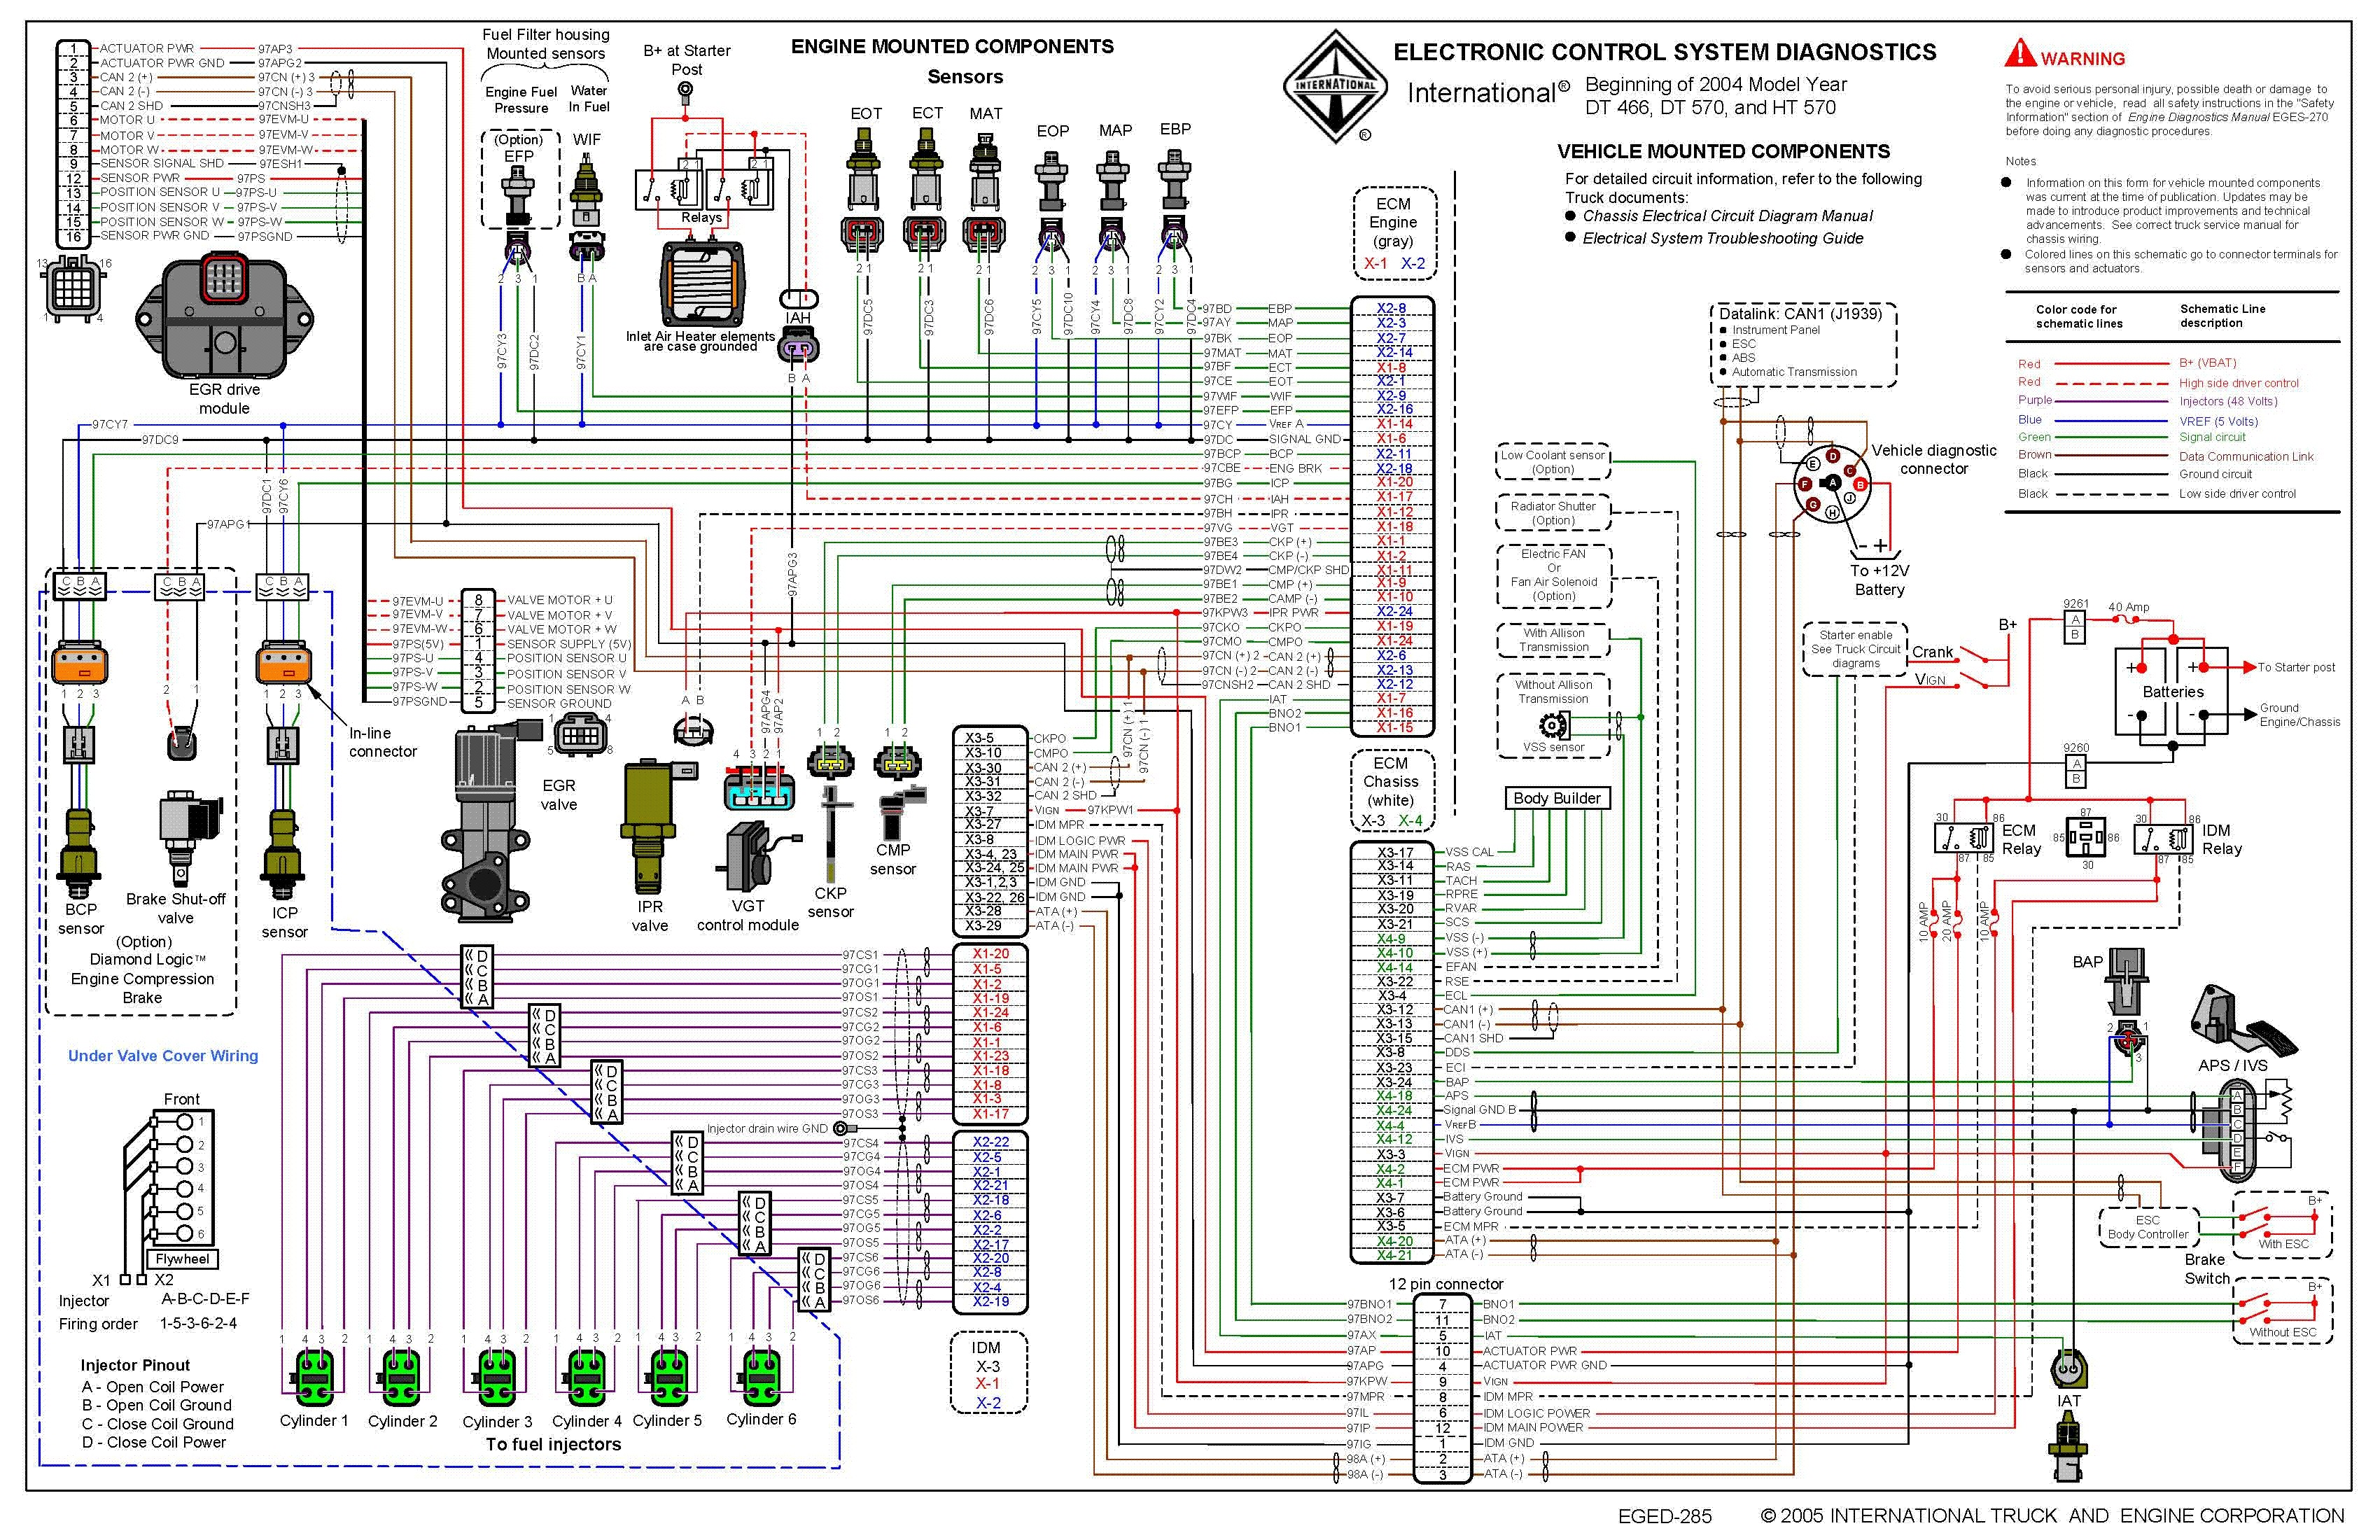 Ih 584 Wiring Diagram | Wiring Schematic Diagram Ih Wiring Harness on pet harness, pony harness, electrical harness, oxygen sensor extension harness, maxi-seal harness, battery harness, obd0 to obd1 conversion harness, dog harness, fall protection harness, alpine stereo harness, nakamichi harness, cable harness, suspension harness, radio harness, safety harness, engine harness, amp bypass harness,